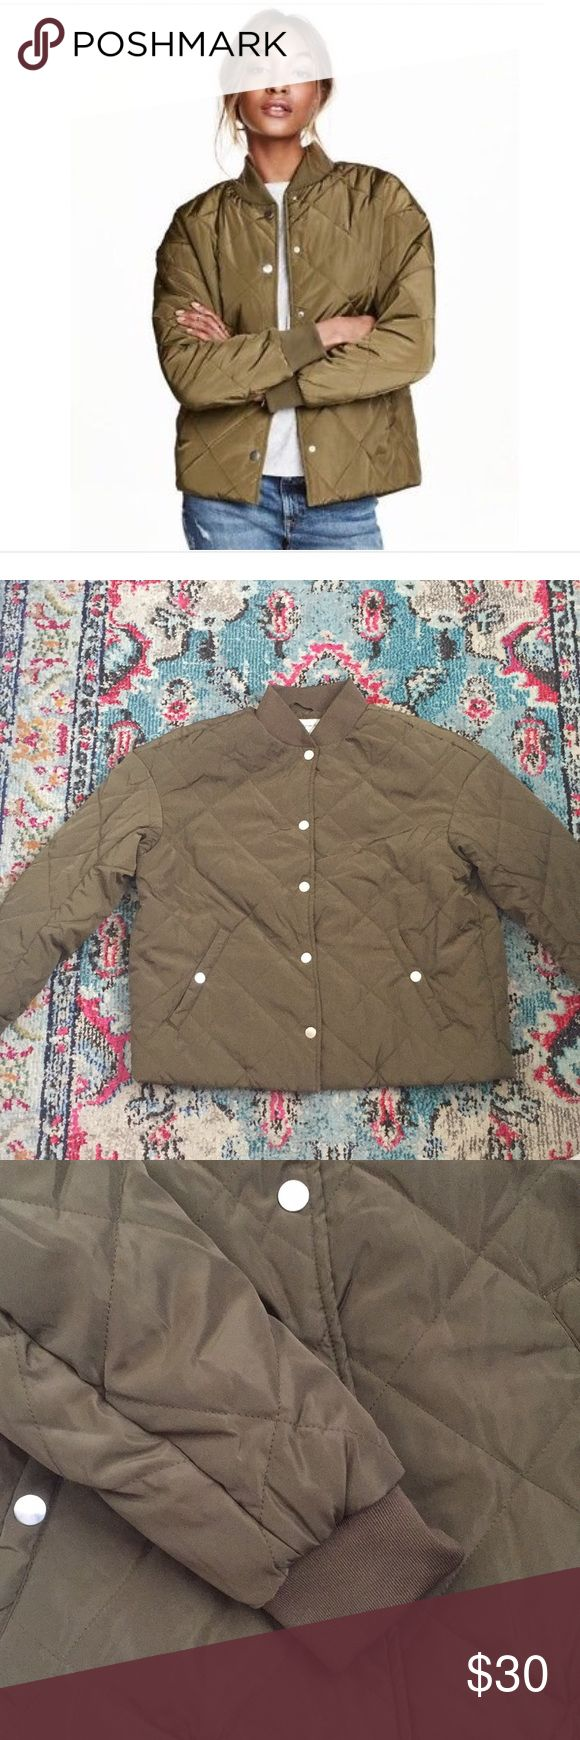 H&M Quilted Bomber Jacket H&M's Logg Lightweight jacket